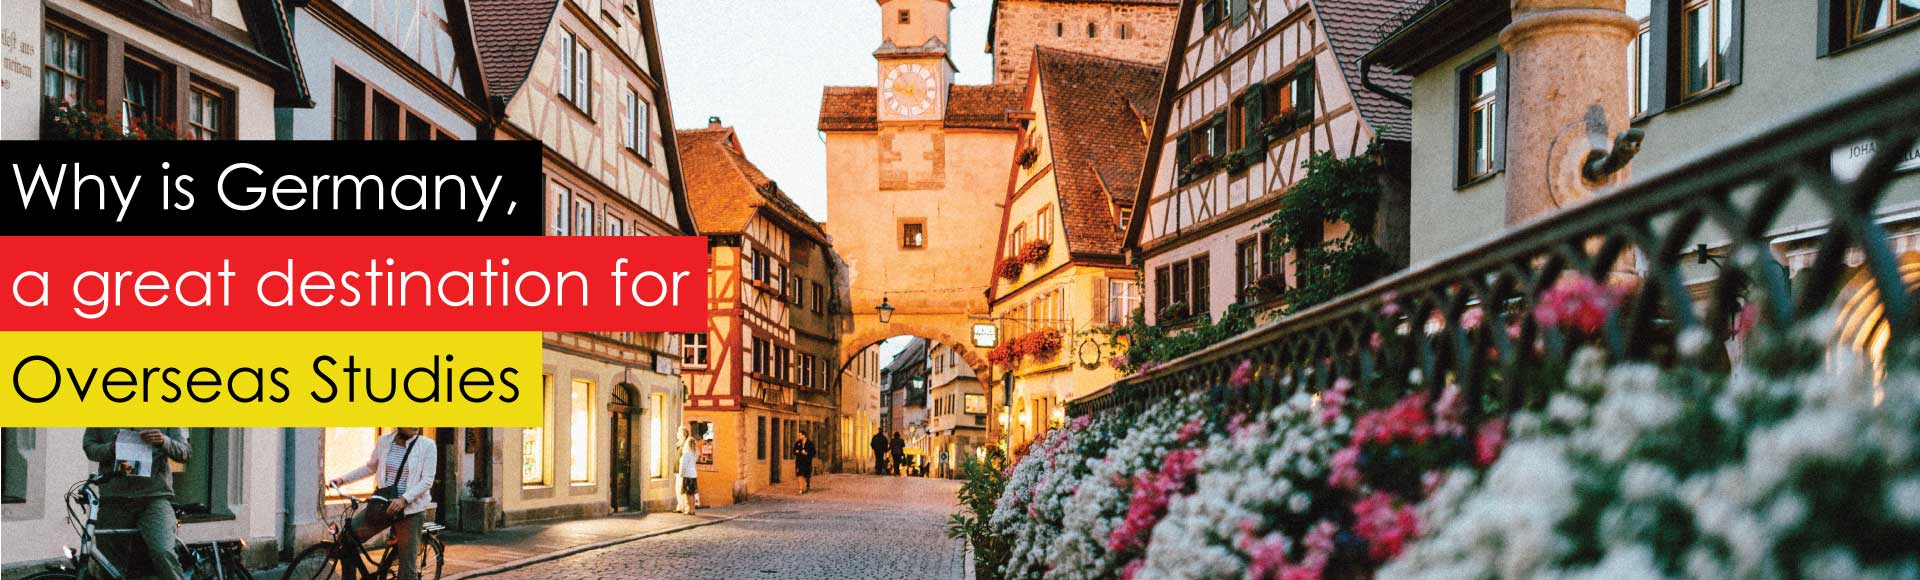 Why is Germany, a great destination for Overseas Studies